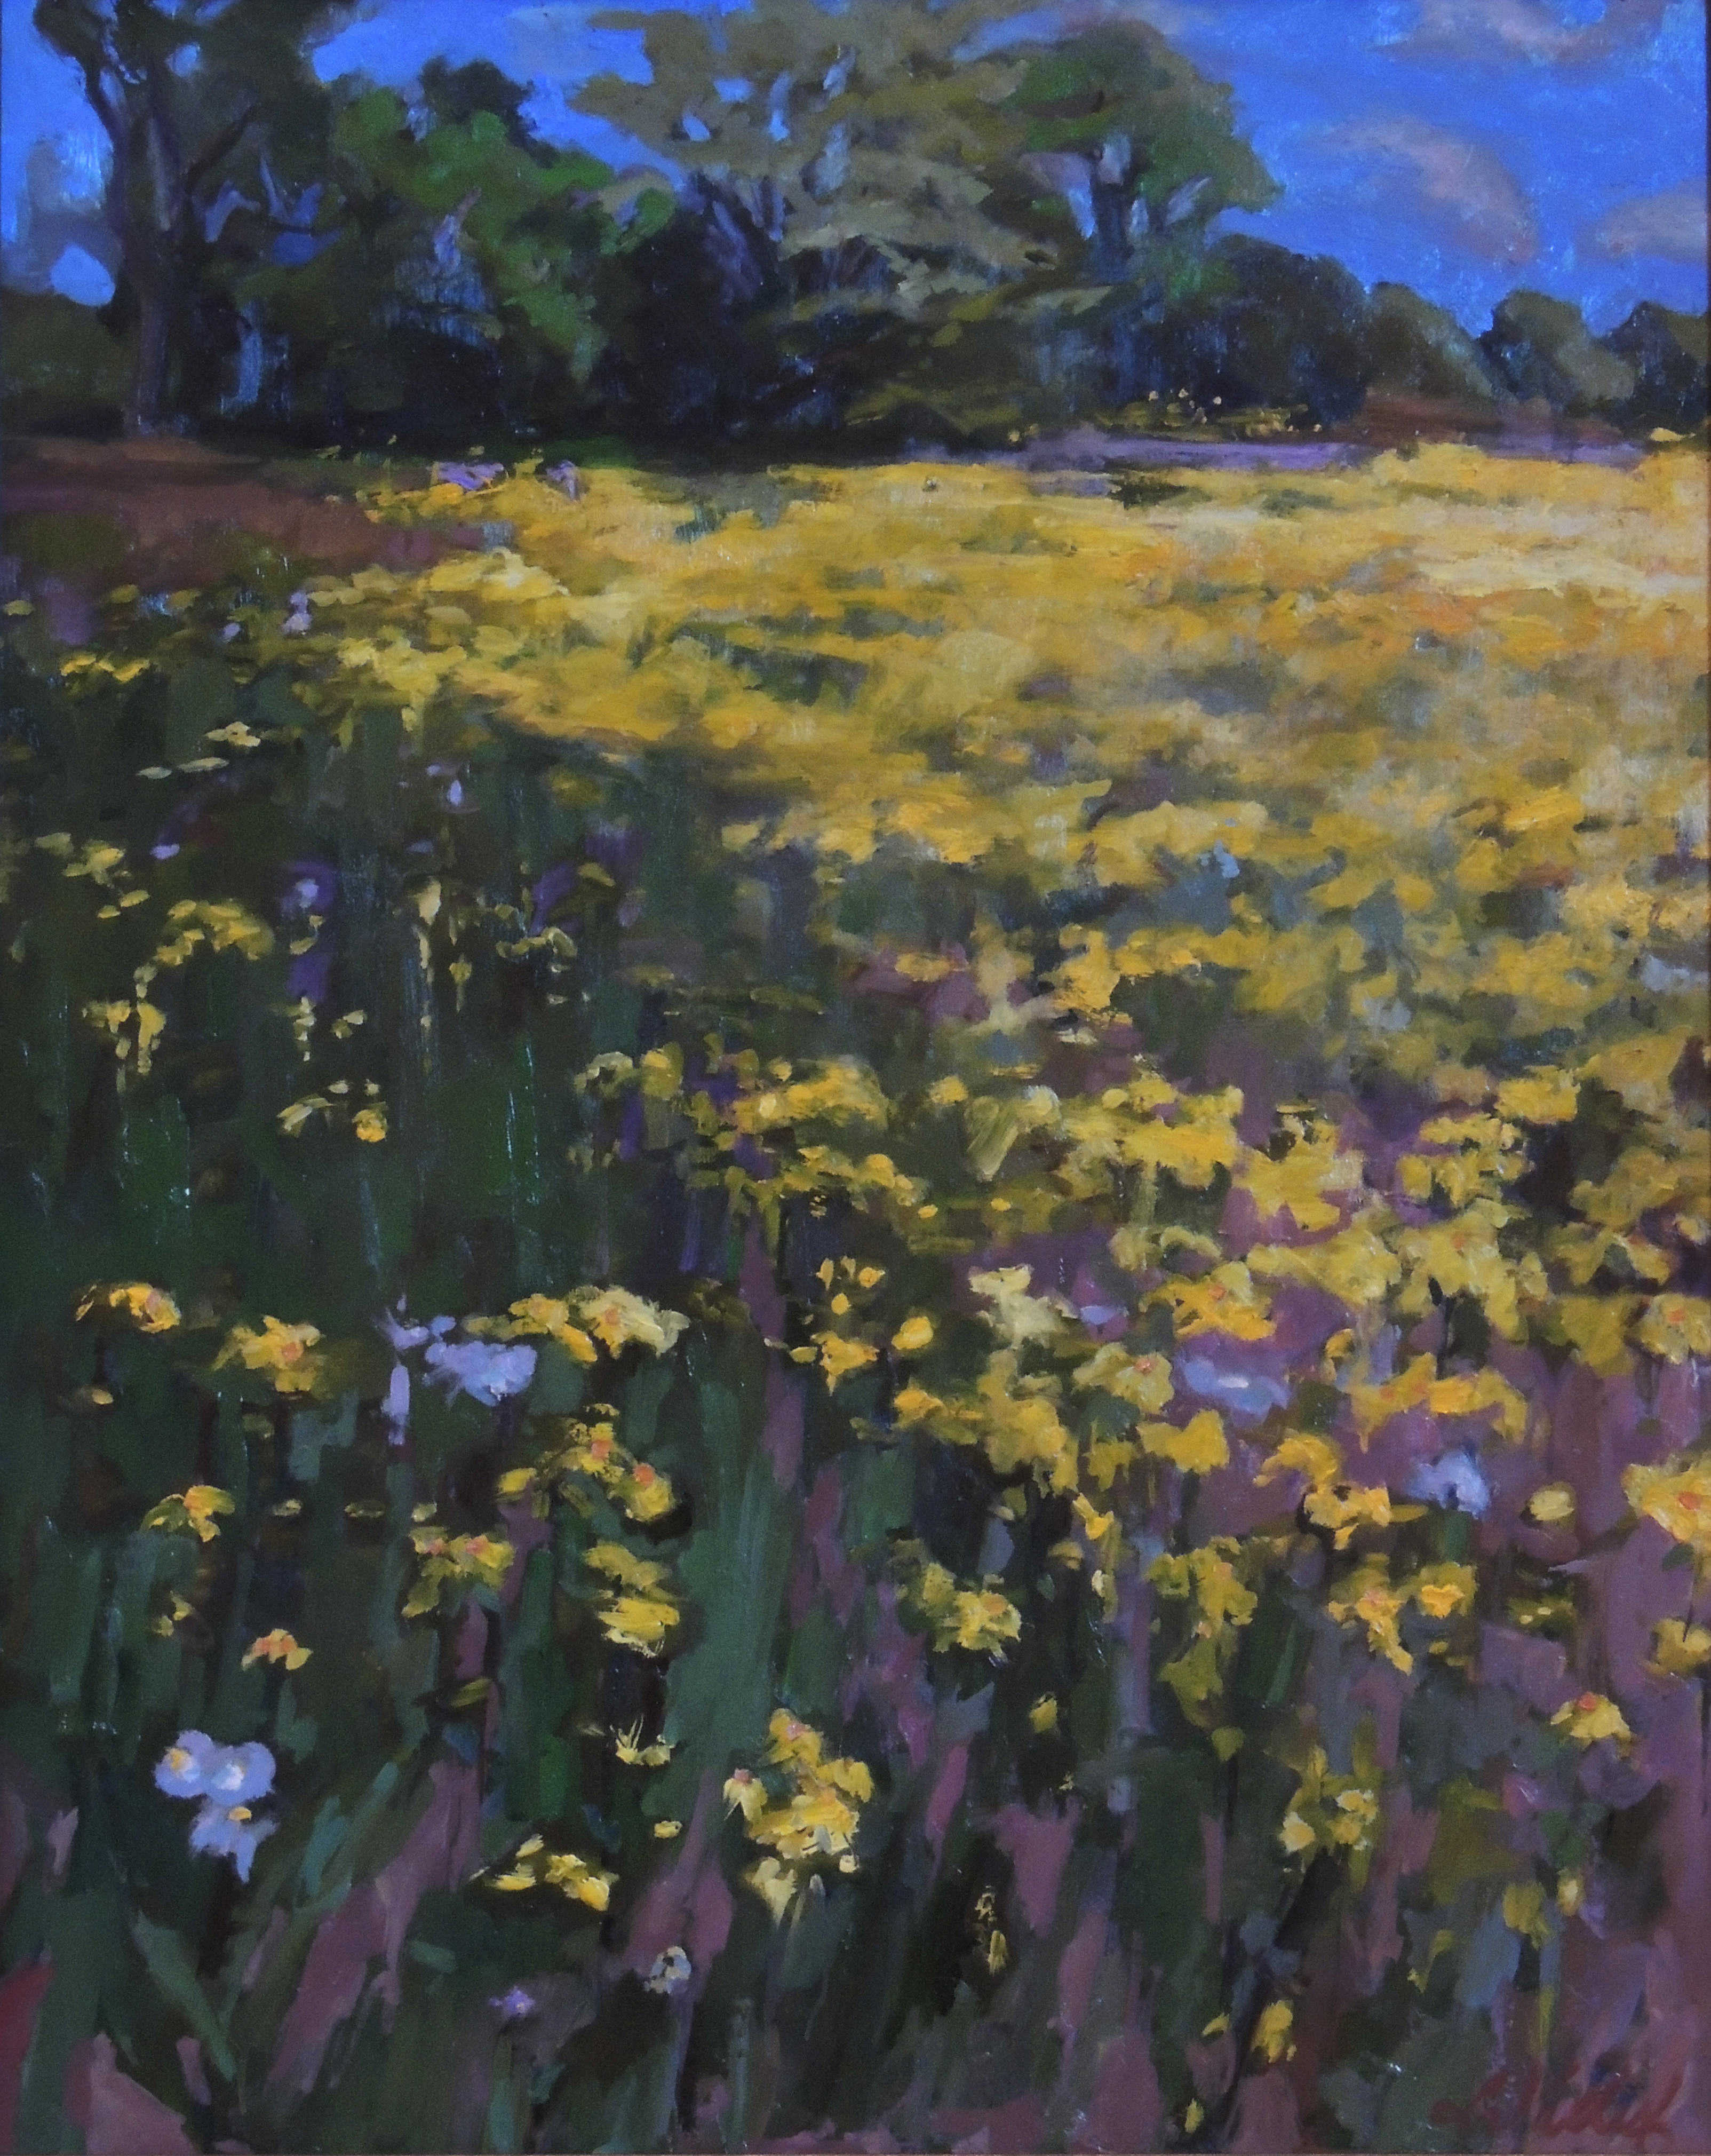 Second Place | Karen LaValley | GOLDEN FIELD ROCKY FORK PARK | oil | frame size 37x31